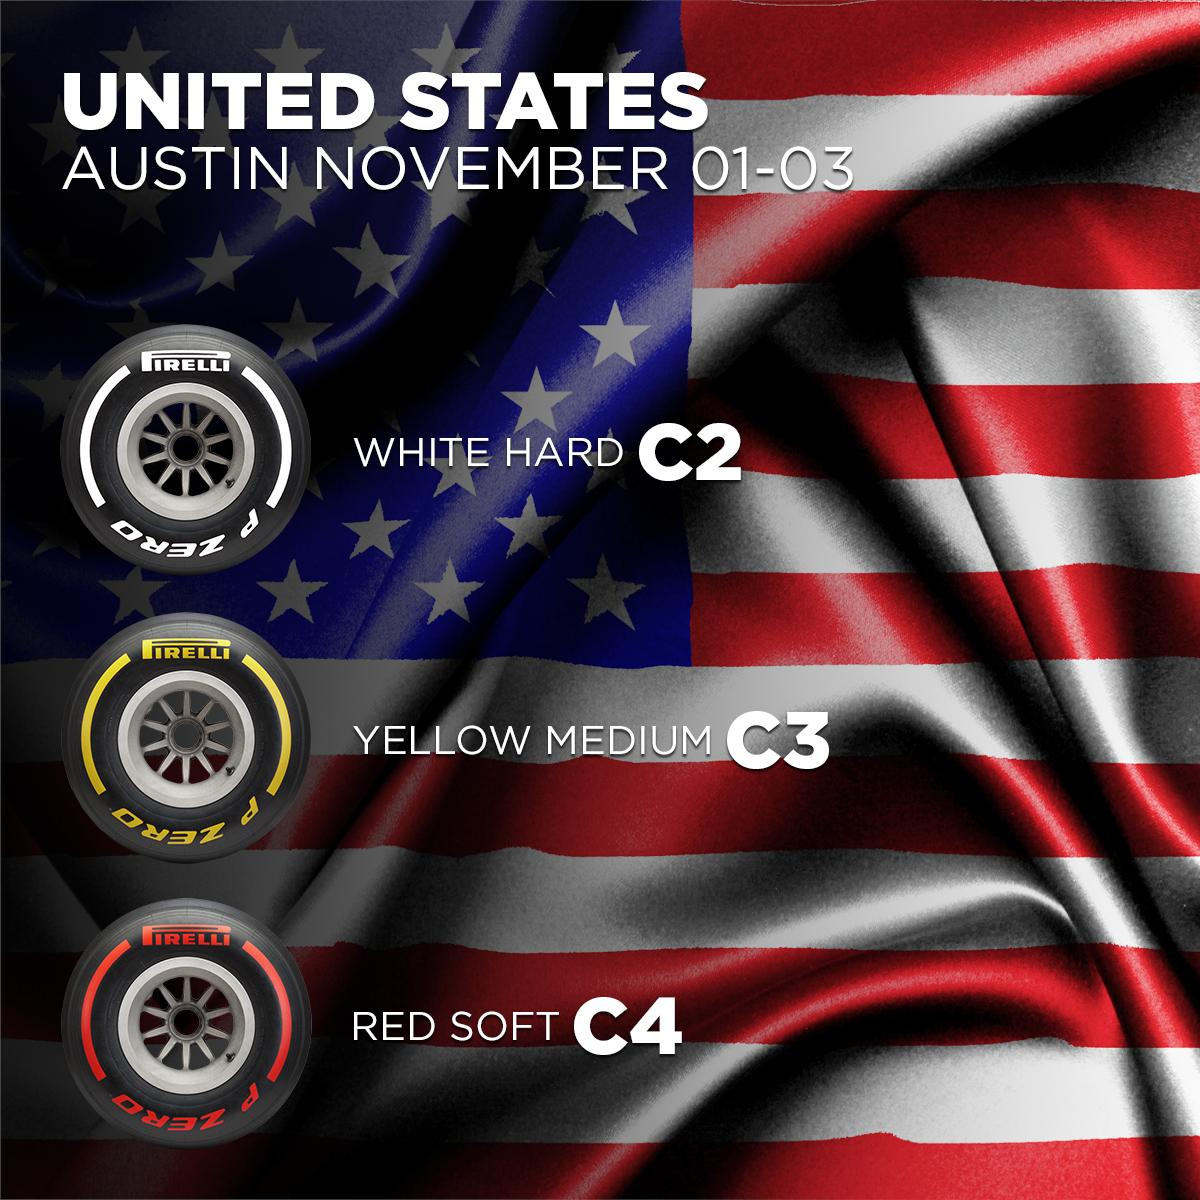 Here are our #Fit4F1 choices for the #USGP later this fall. 🇺🇸 http://bit.ly/2xSvgID